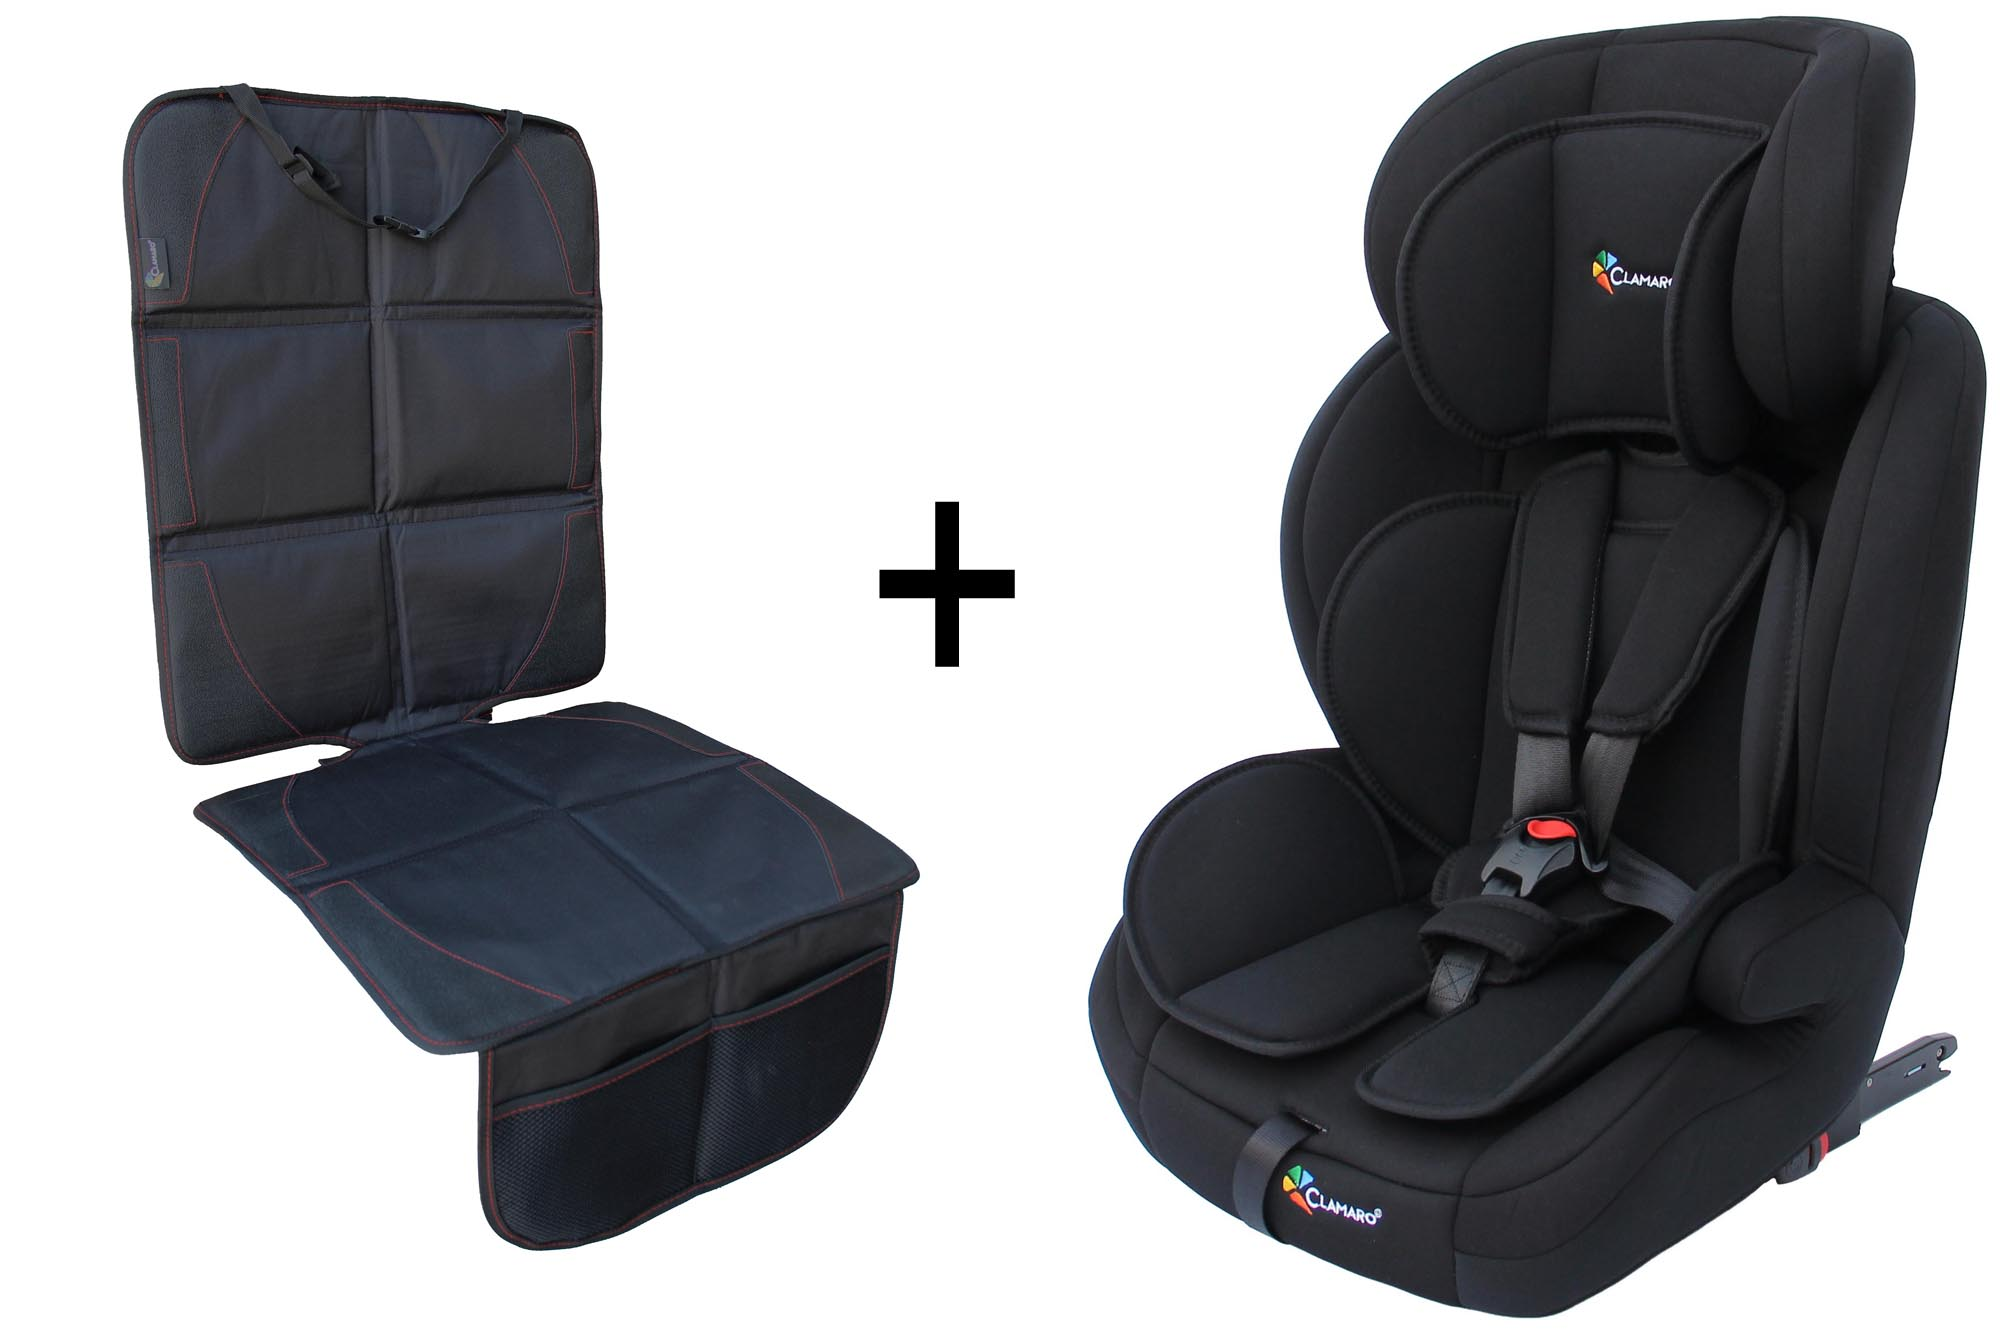 clamaro autokindersitz mit isofix von 9 bis 36 kg gruppe 1. Black Bedroom Furniture Sets. Home Design Ideas